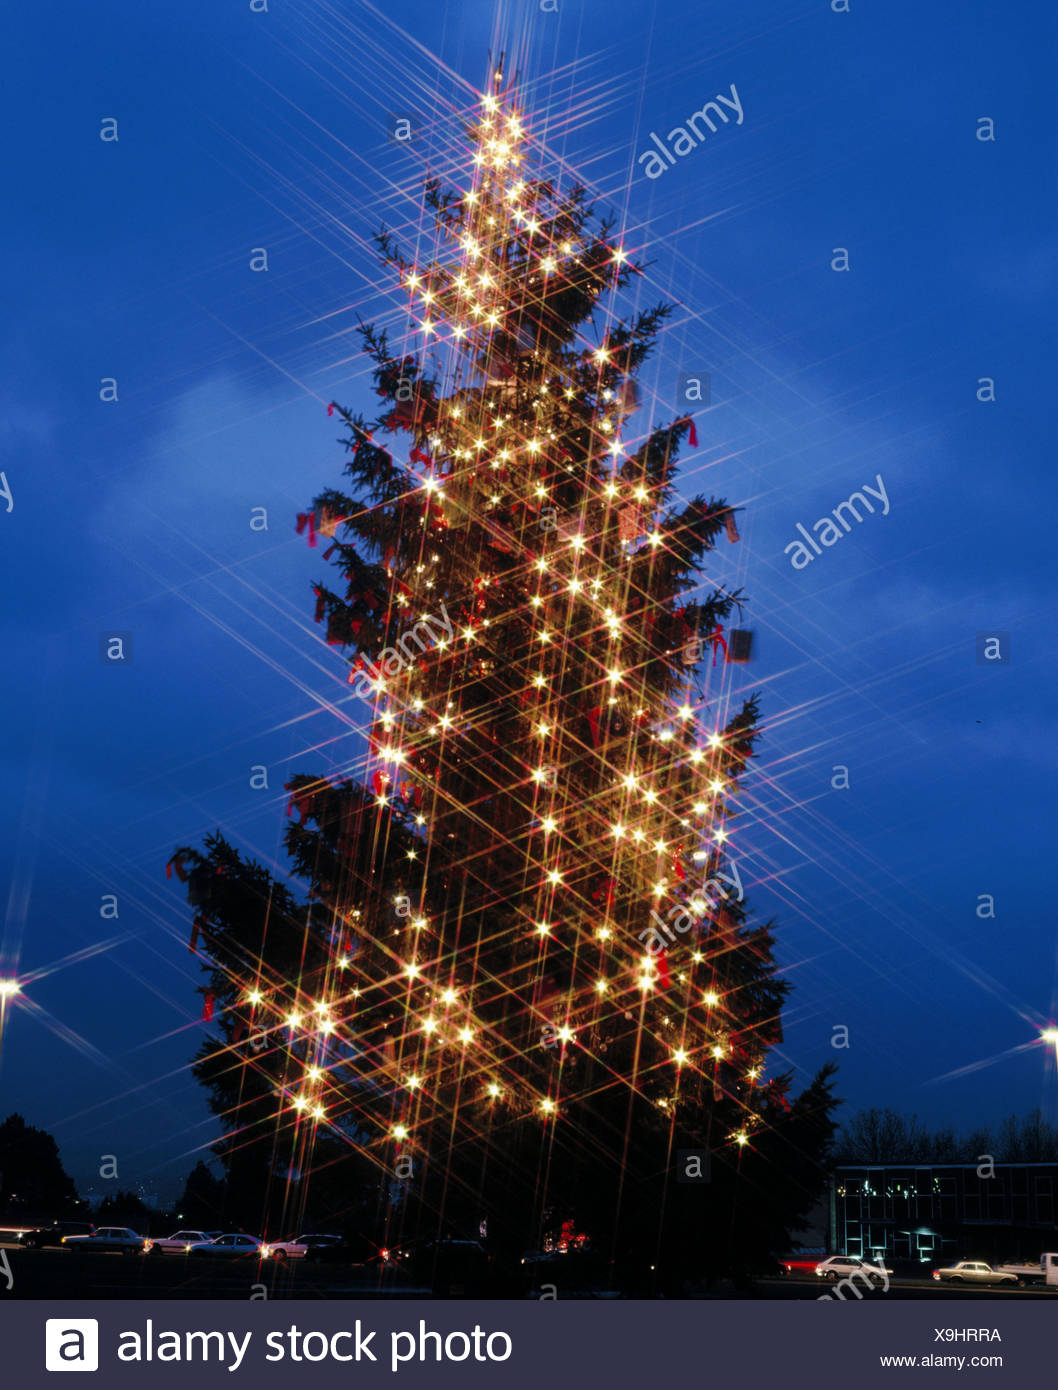 outside christmas tree germany europe friedrichs place kassel lights star grid filter christmas